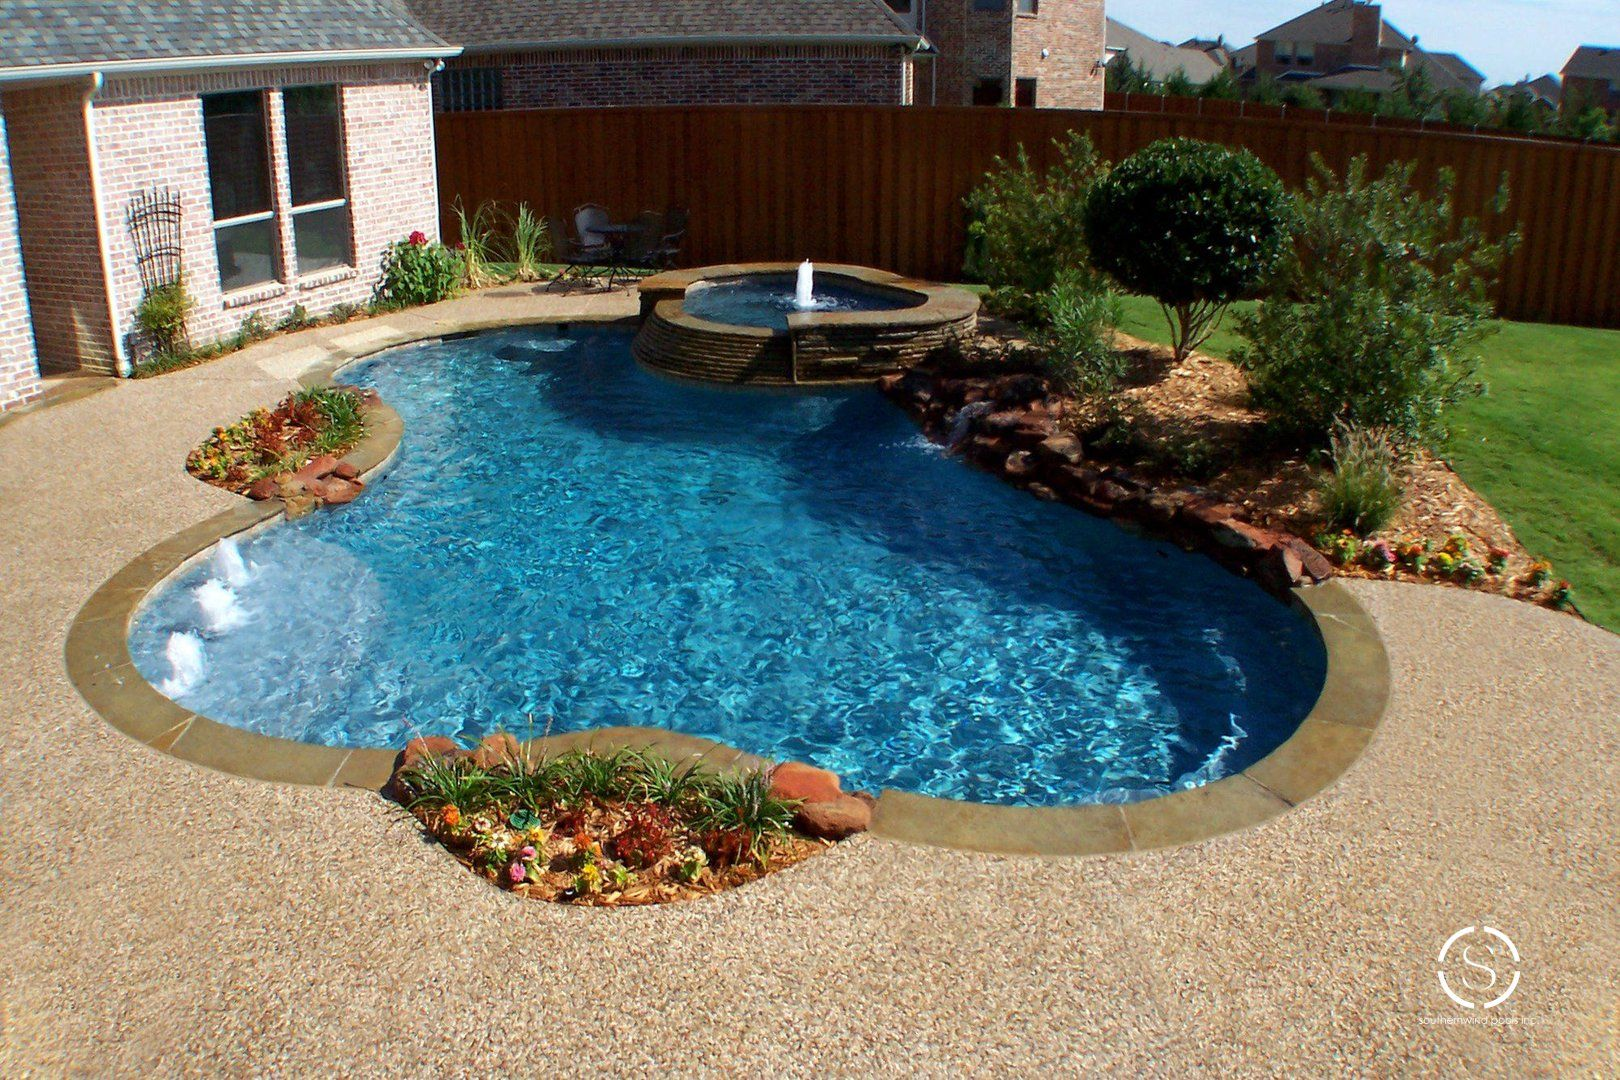 Sheer Descent waterfall from @zodiacpoolusa that we ... |Small Freeform Pools With Waterfalls